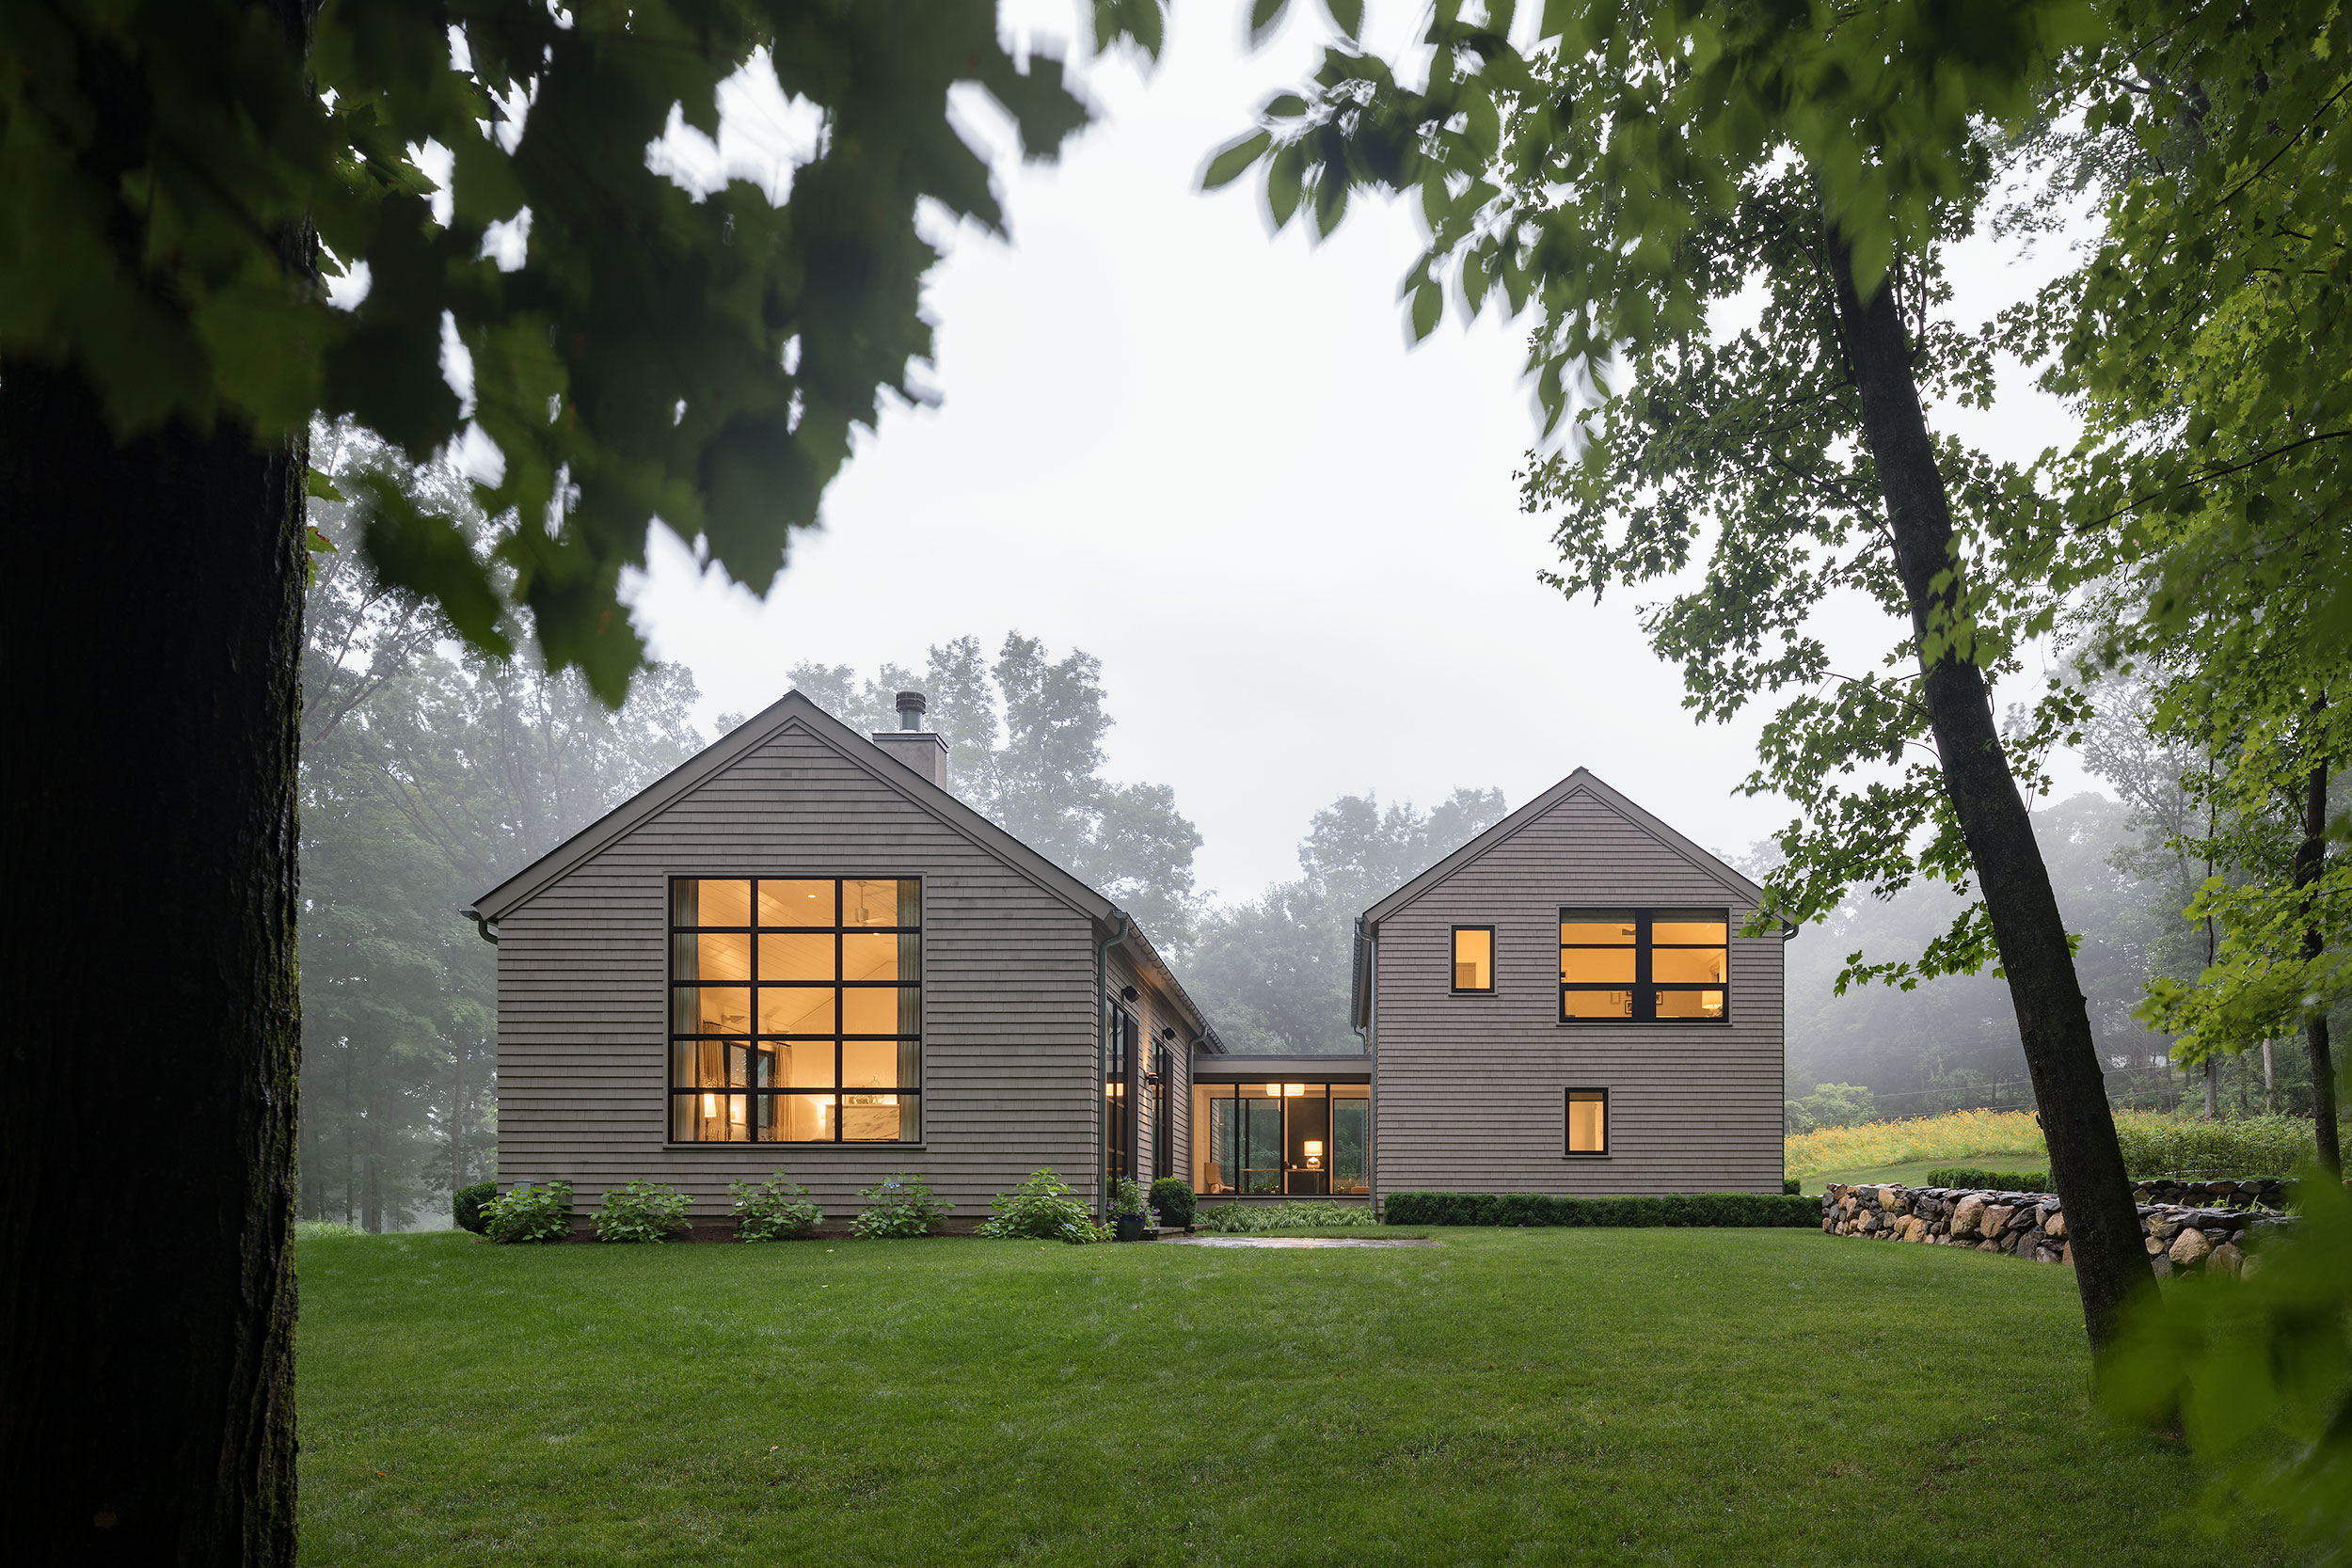 Foggy Photograph, Modern Architectural Design